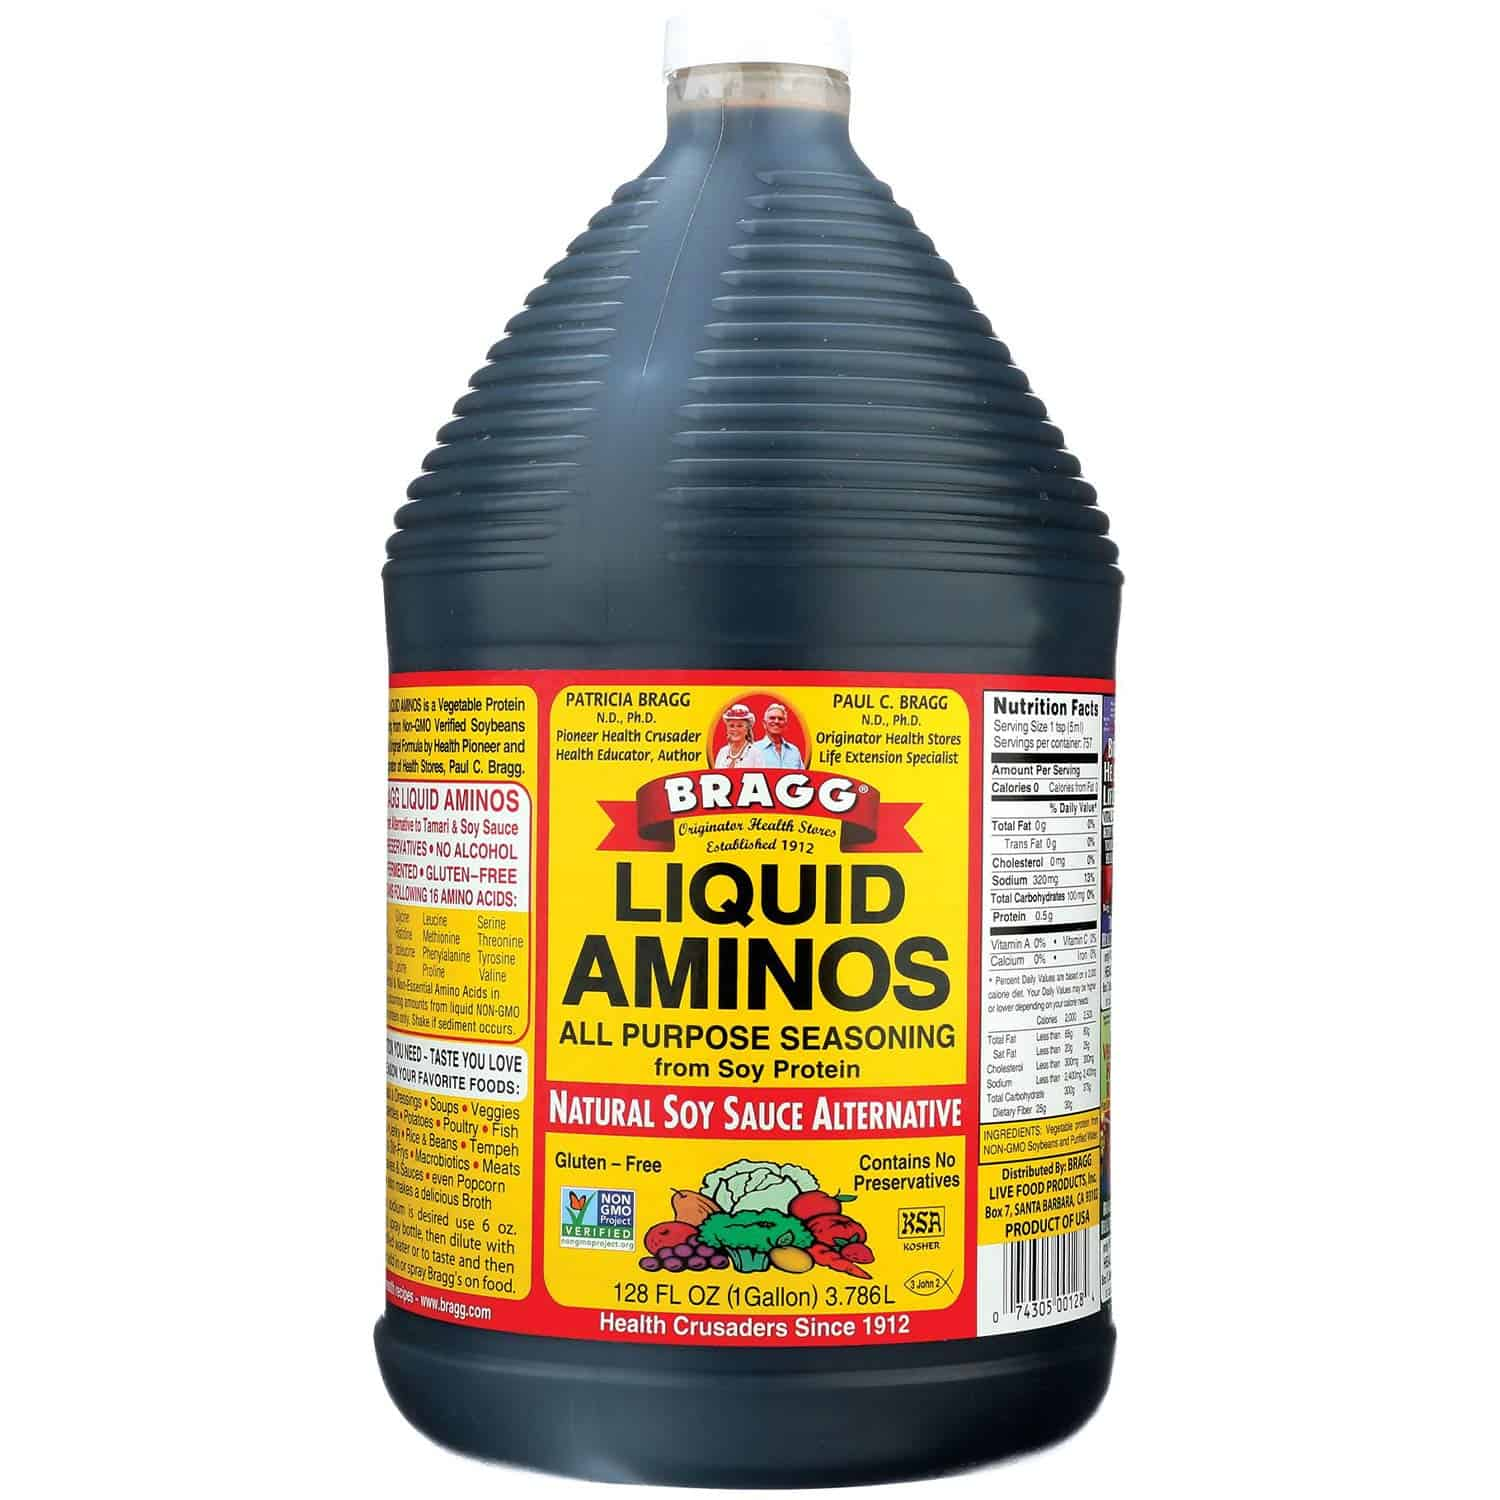 Liquid aminos as a soy sauce substitute